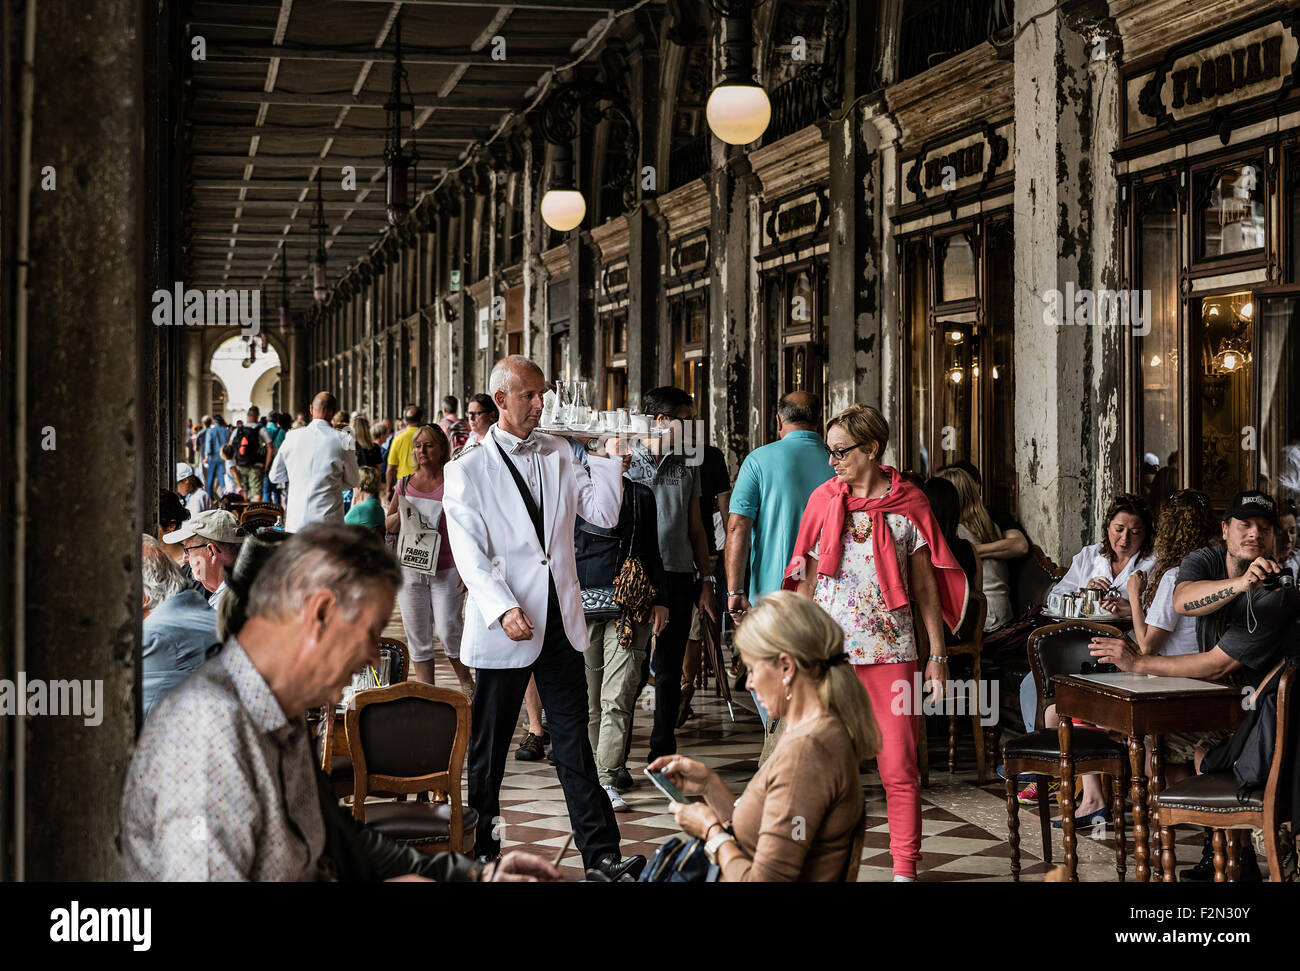 Florian Cafe, St. Marks Square, San Marco, Venice, Italy, Europe - Stock Image